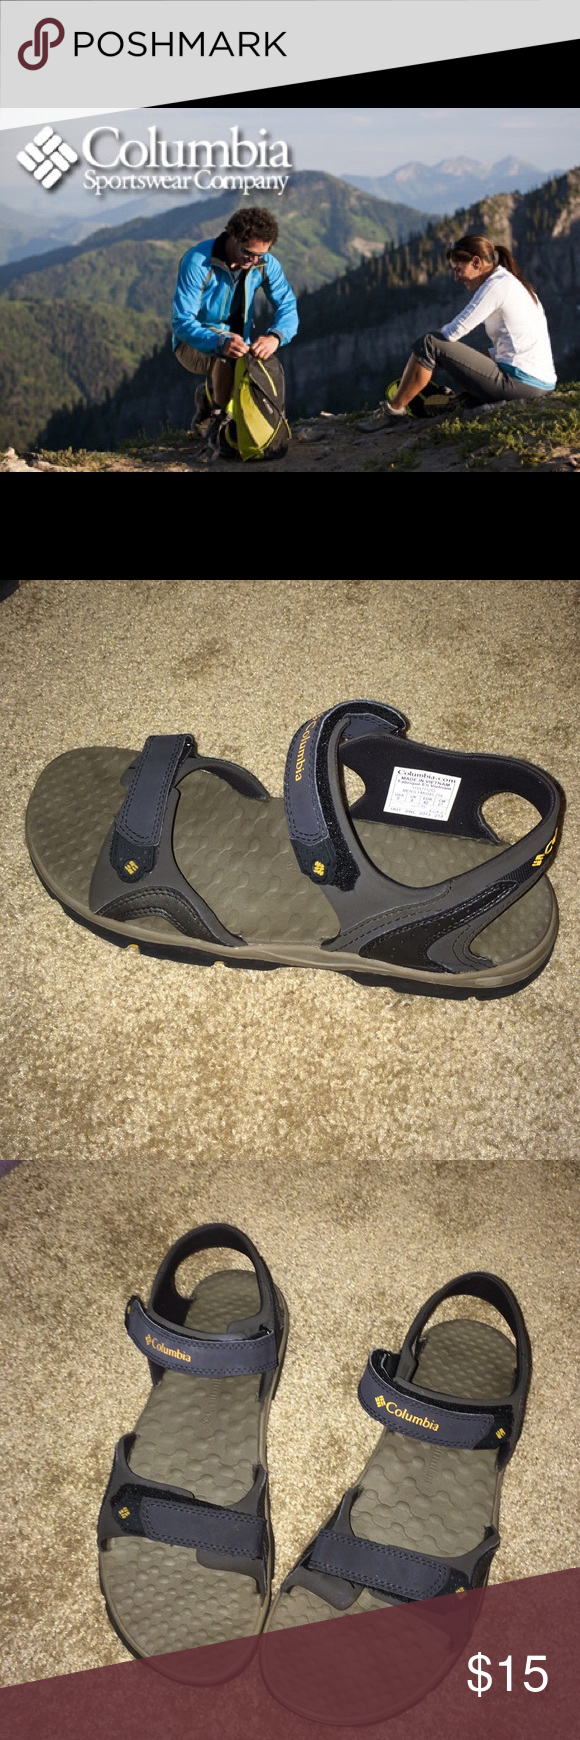 Columbia sandals Men's size 9 in the color Mud Columbia Riptide sandals with adjustable Velcro closure. excellent condition, soles show very little wear.   Features & Details Synthetic and spandex/neoprene upper is light but durable, Velcro® closures Fully lined in spandex/neoprene, with a textured and comfortable cushioned footbed that keeps feet dry and cool Flexible but durable all-terrain outsole Columbia Shoes Sandals & Flip-Flops